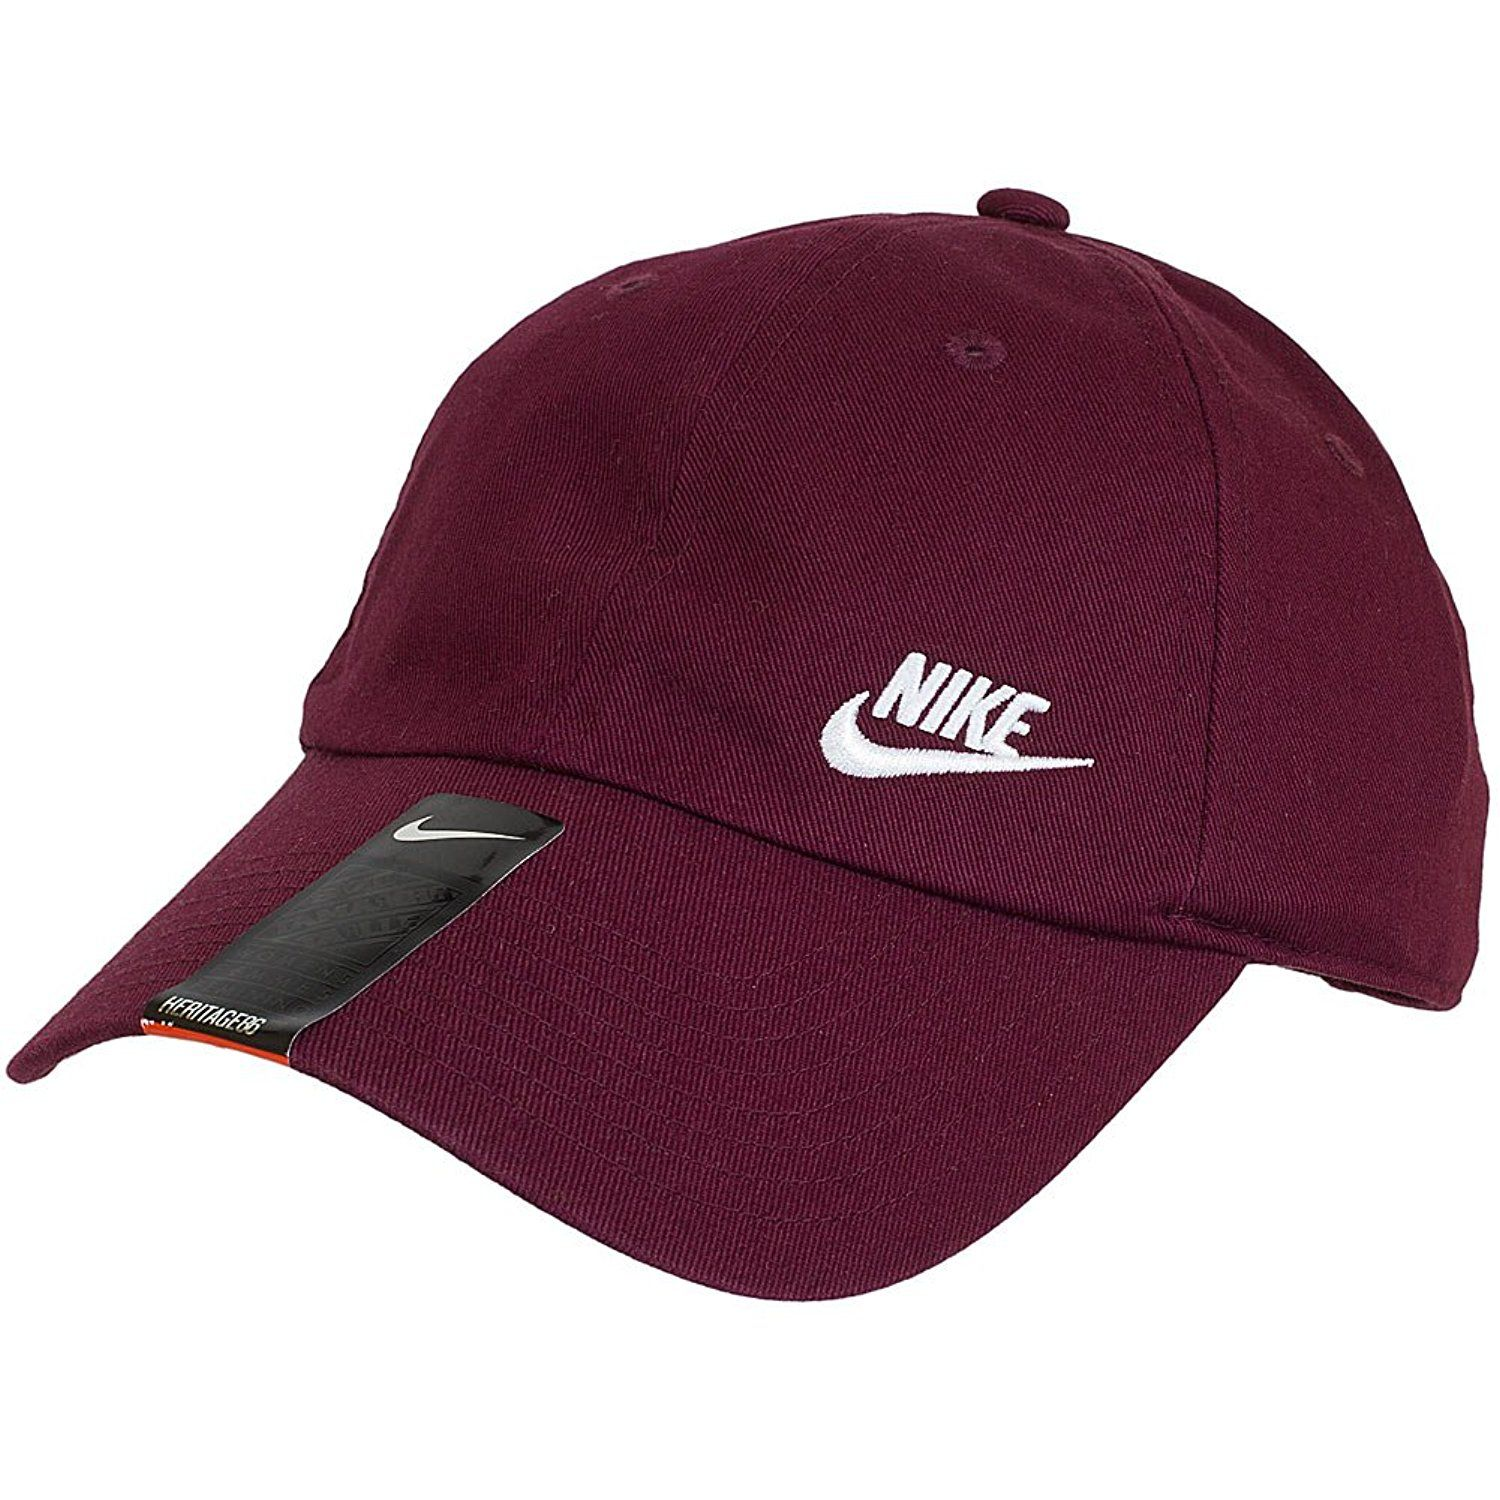 Amazon.com  Nike Women s Twill H86 Women s Maroon Baseball Cap Burgundy   Sports   Outdoors 88be02f3fdb